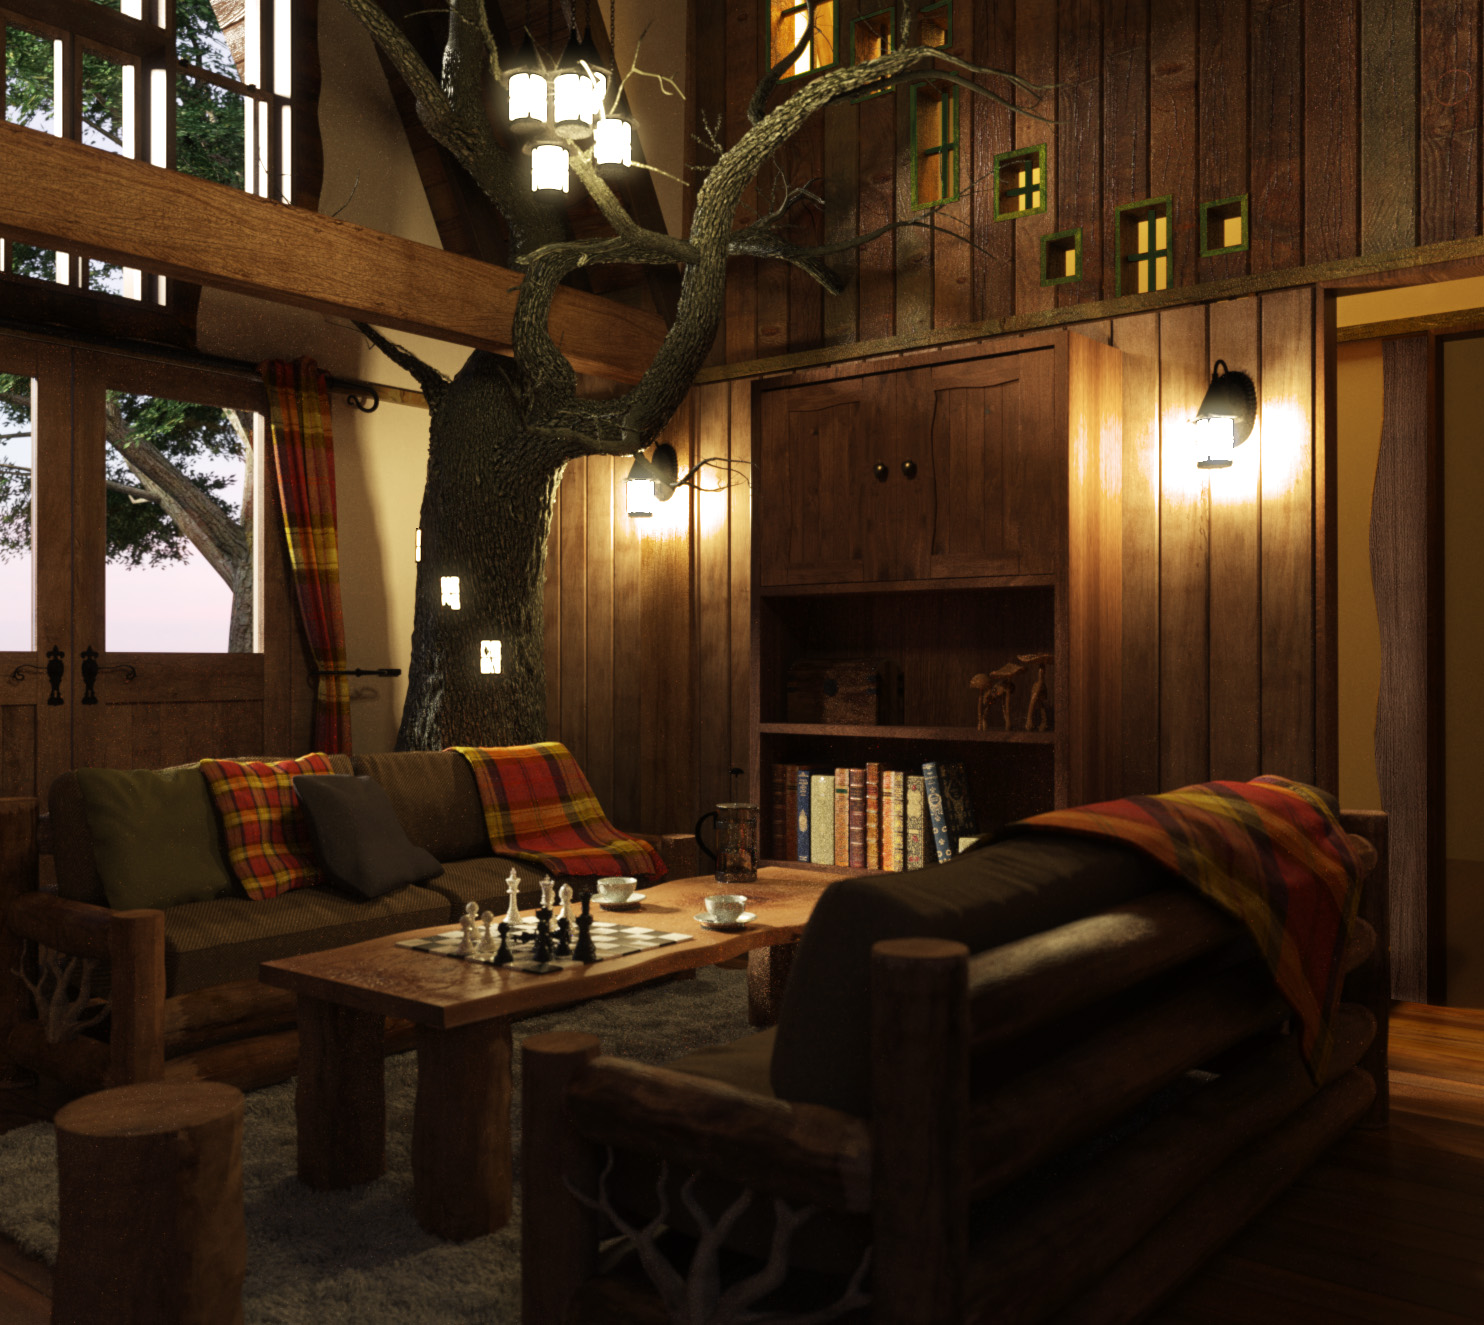 tree house interior designs.  Designs Flou0027s Design Incorporates A Real Tree Into The Treehouse Interior For Tree House Interior Designs O